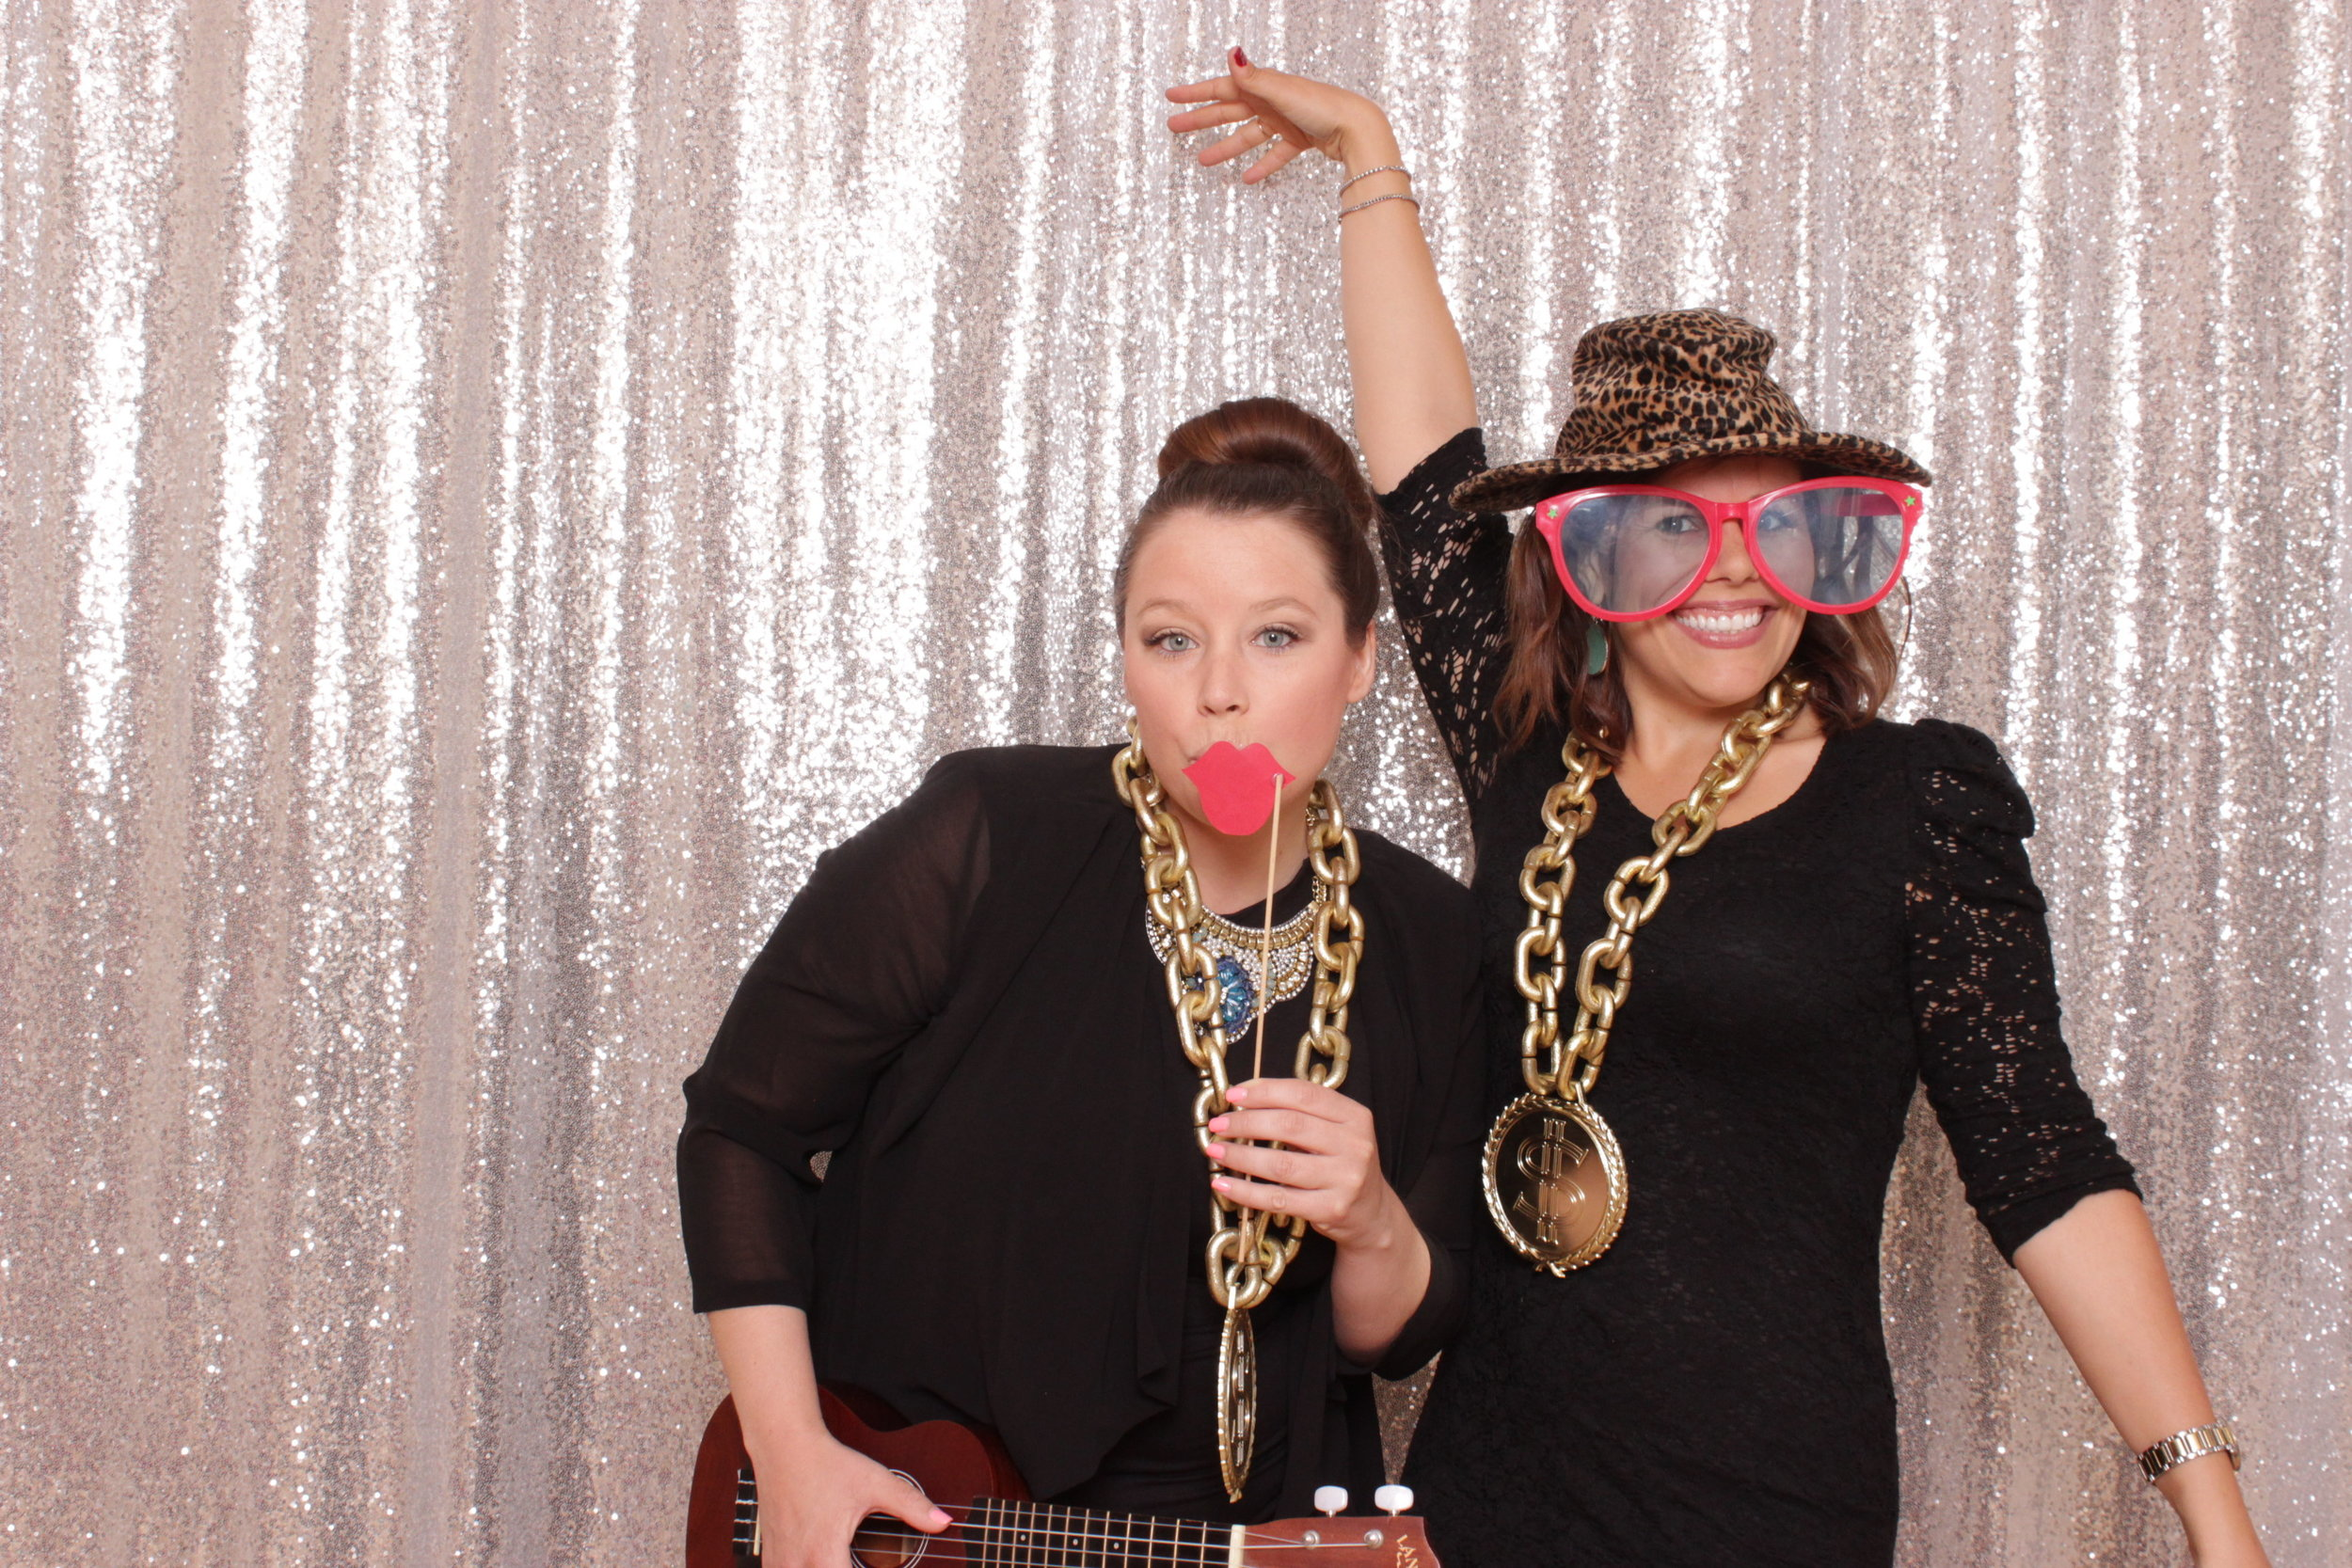 fun-chico-photo-booth-gold-chain-prop